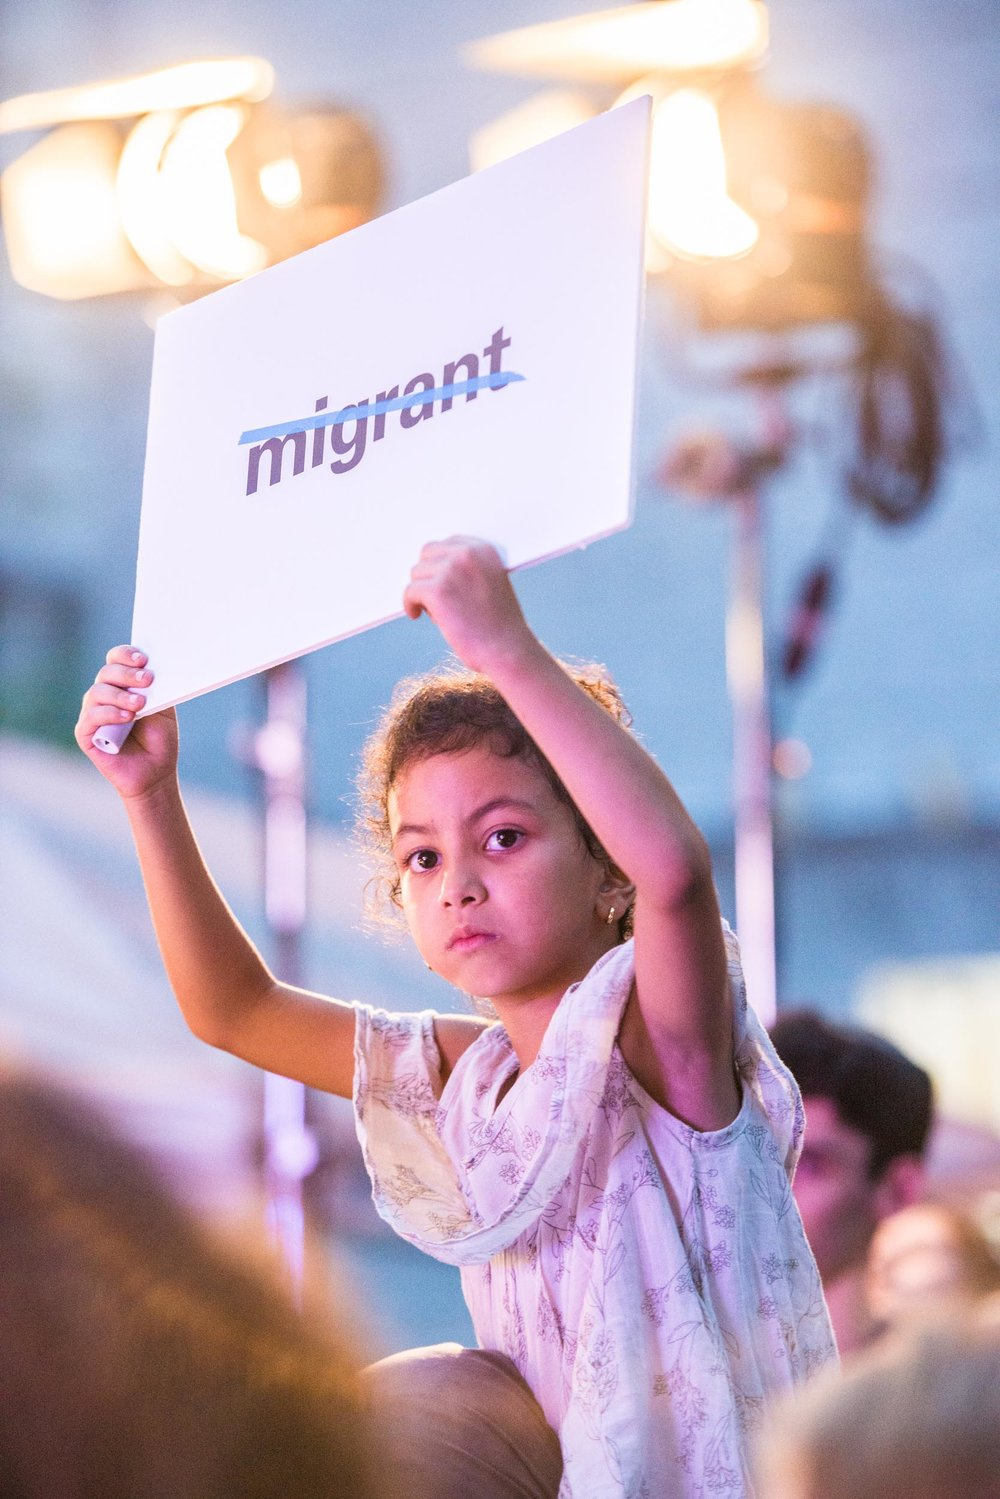 Migrant child - Current events - Photo credit Nicola Bailey.jpg